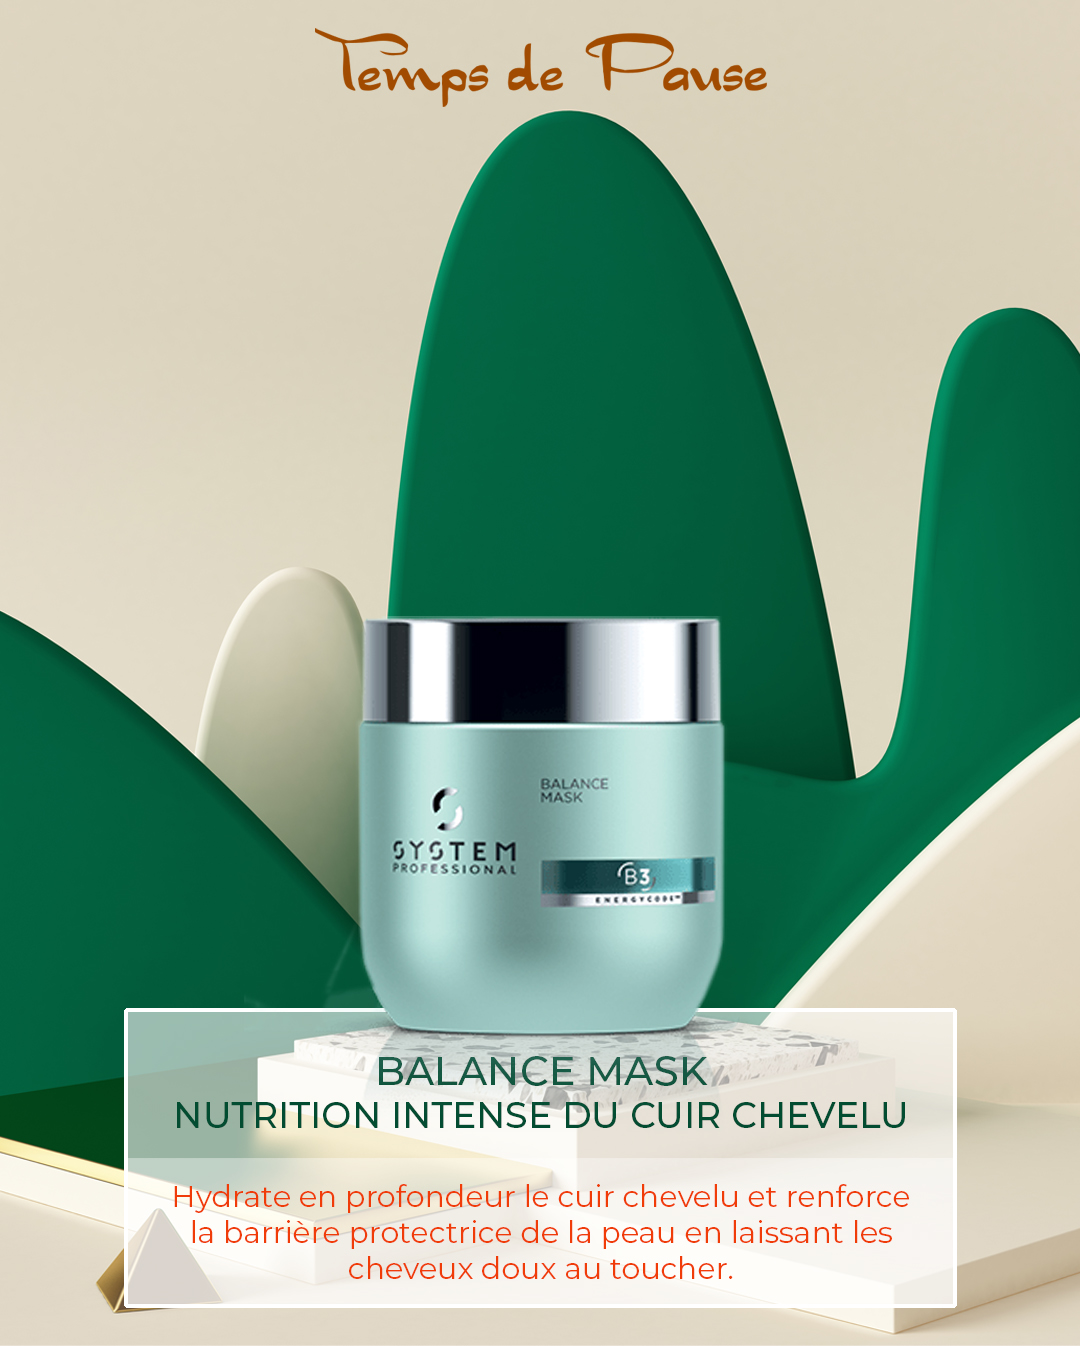 Nutrition intense du cuir chevelu